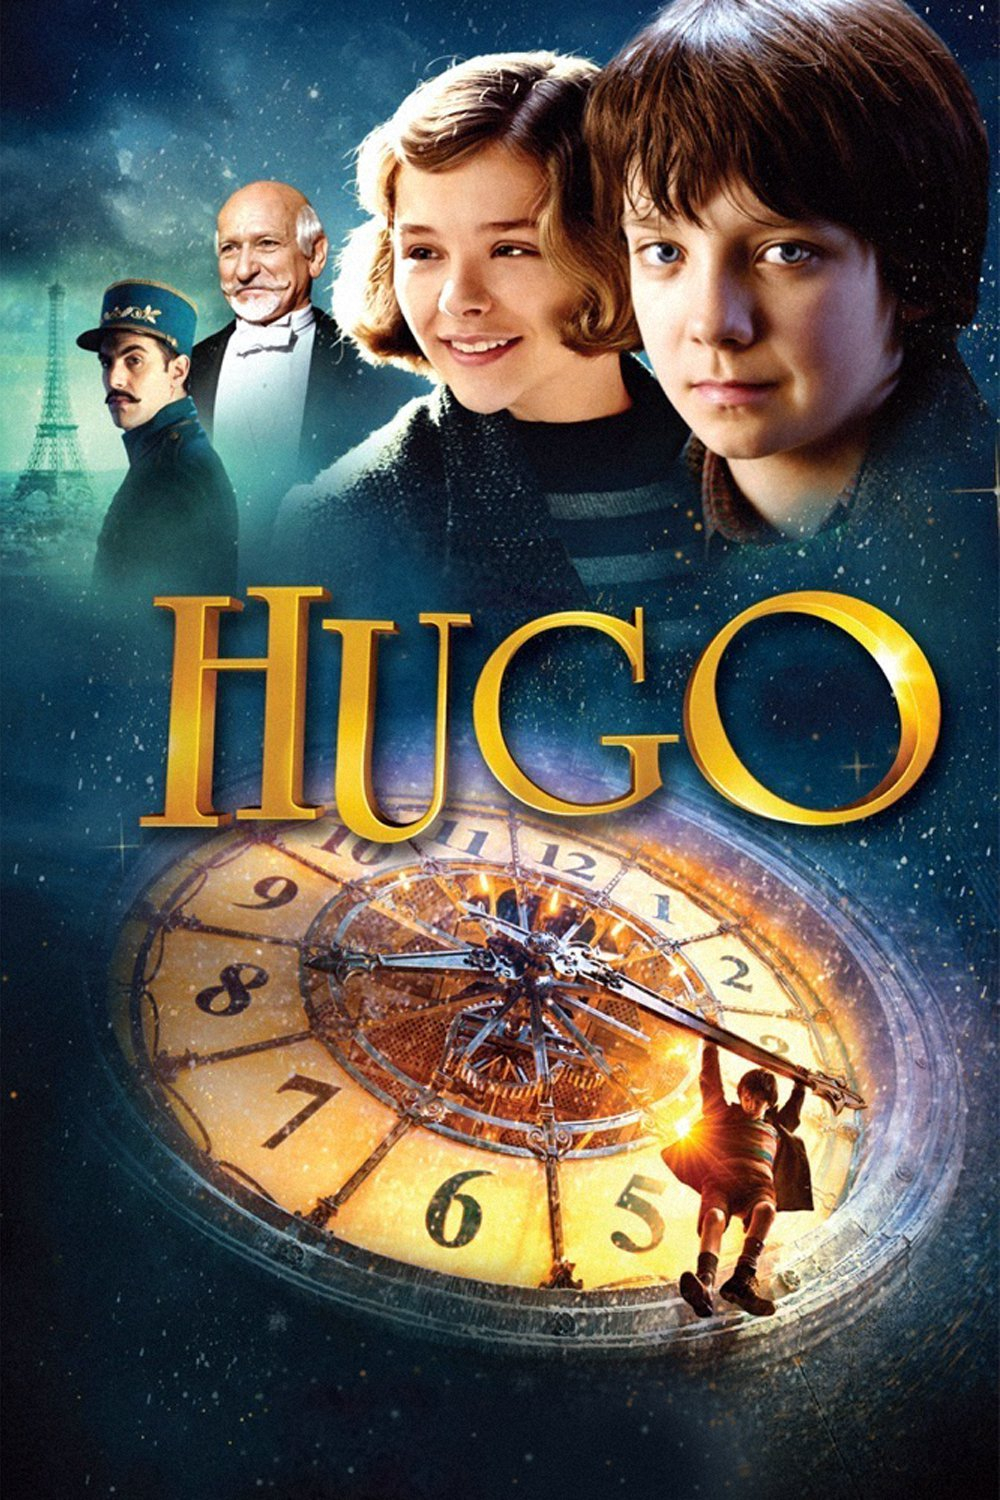 Day 5: Hugo  - Hugo was one of the few Scorsese pictures we hadn't checked out yet so we made sure to jump onto it asap. A wonderful, heartfelt story that Scorsese uses as an ode to cinema.